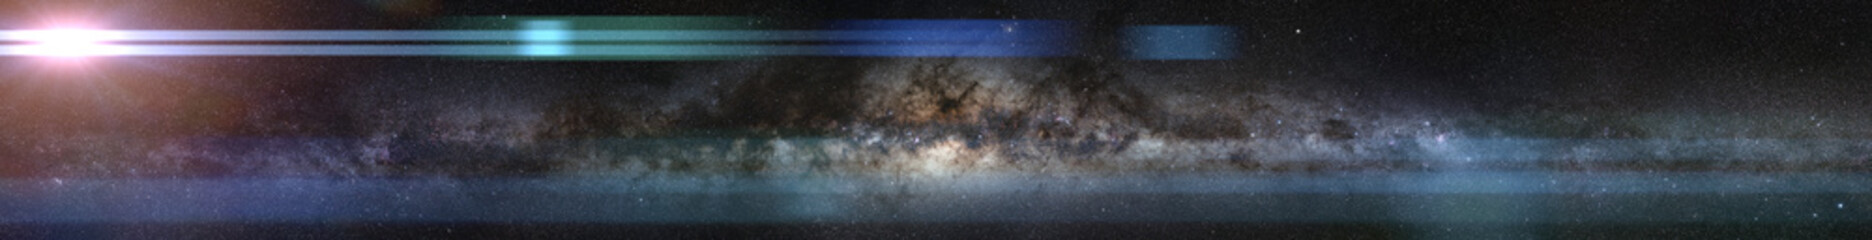 bright star in front of a galaxy